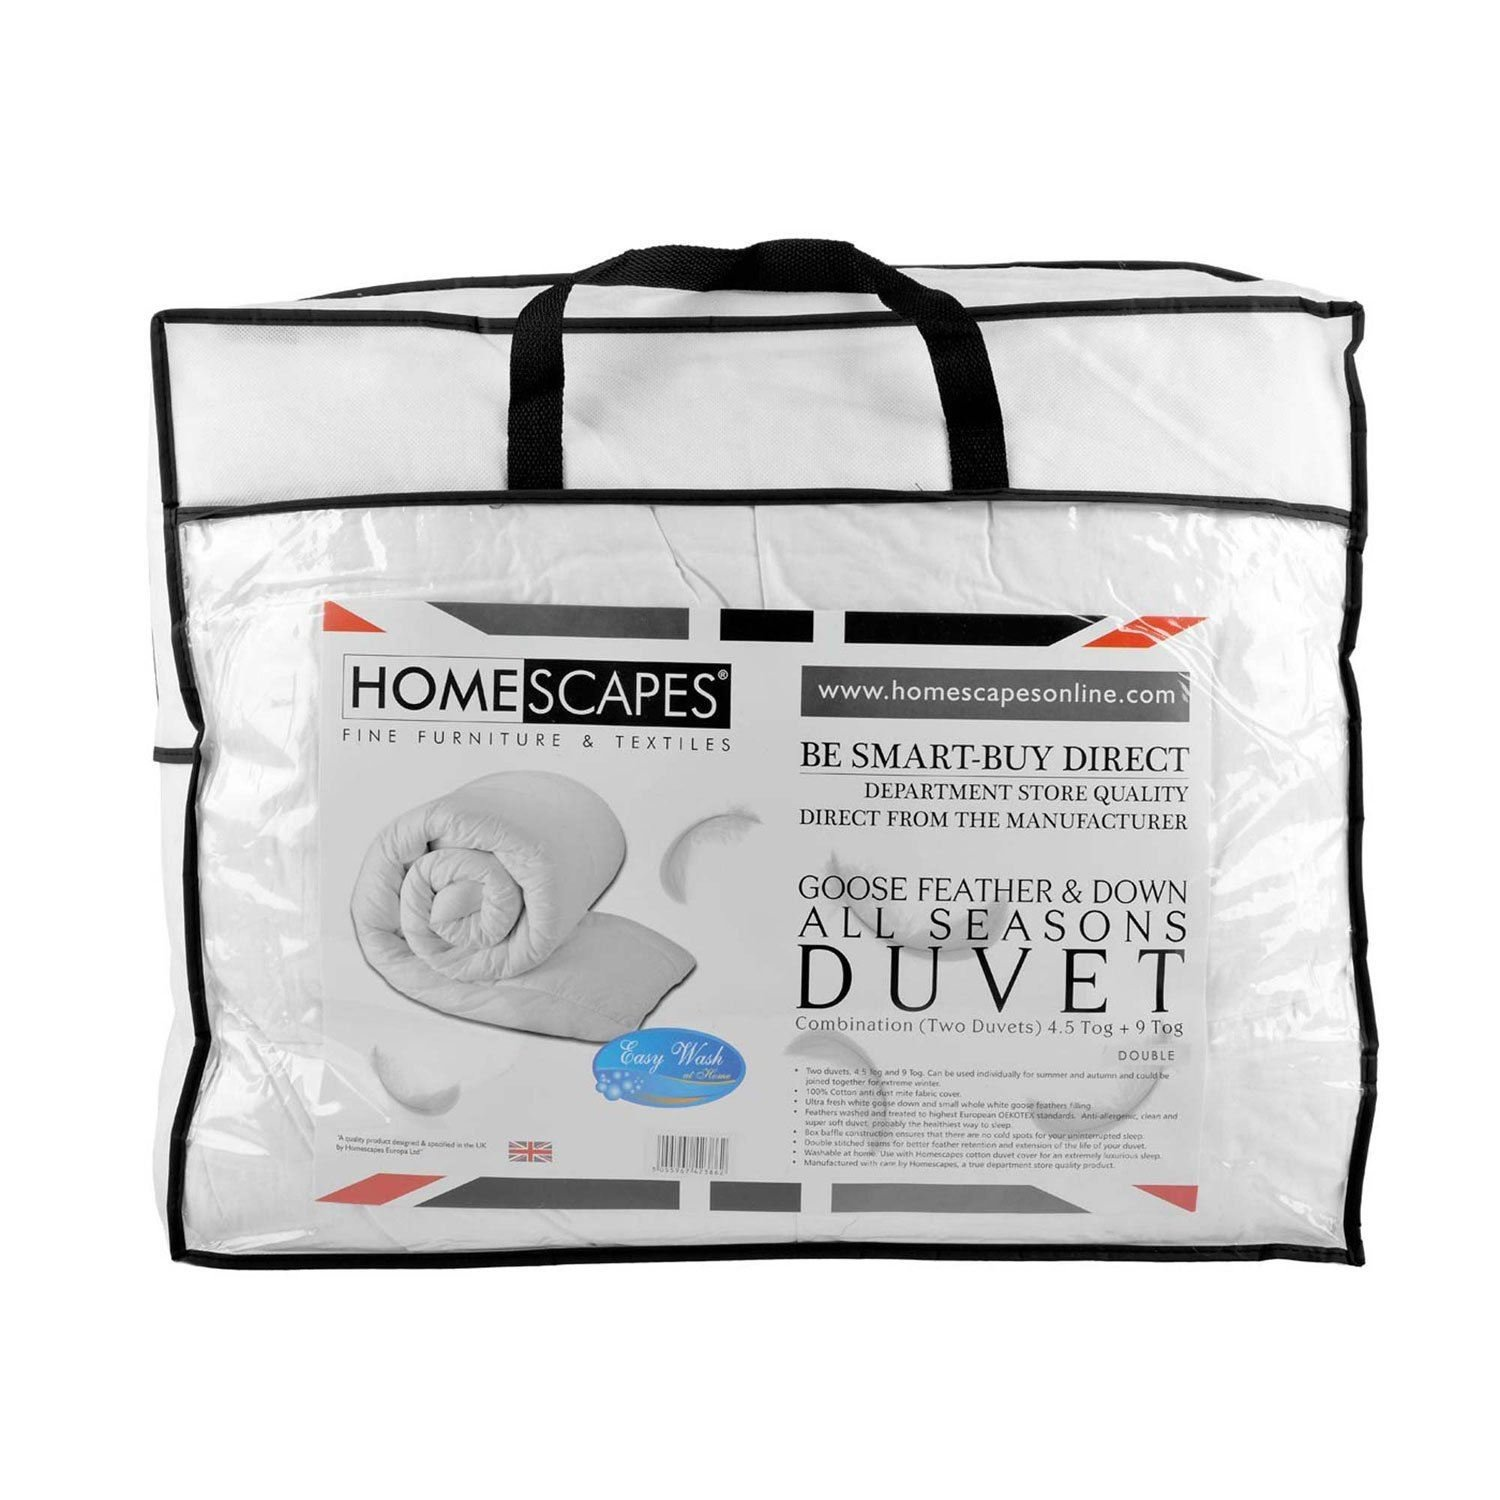 Homescapes Single All Seasons (9 Tog + 4.5 Tog) - Luxury White Goose Feather & Down Duvet - 100% Cotton Anti Dust Mite & Down Proof Fabric - Anti Allergen - Quilt